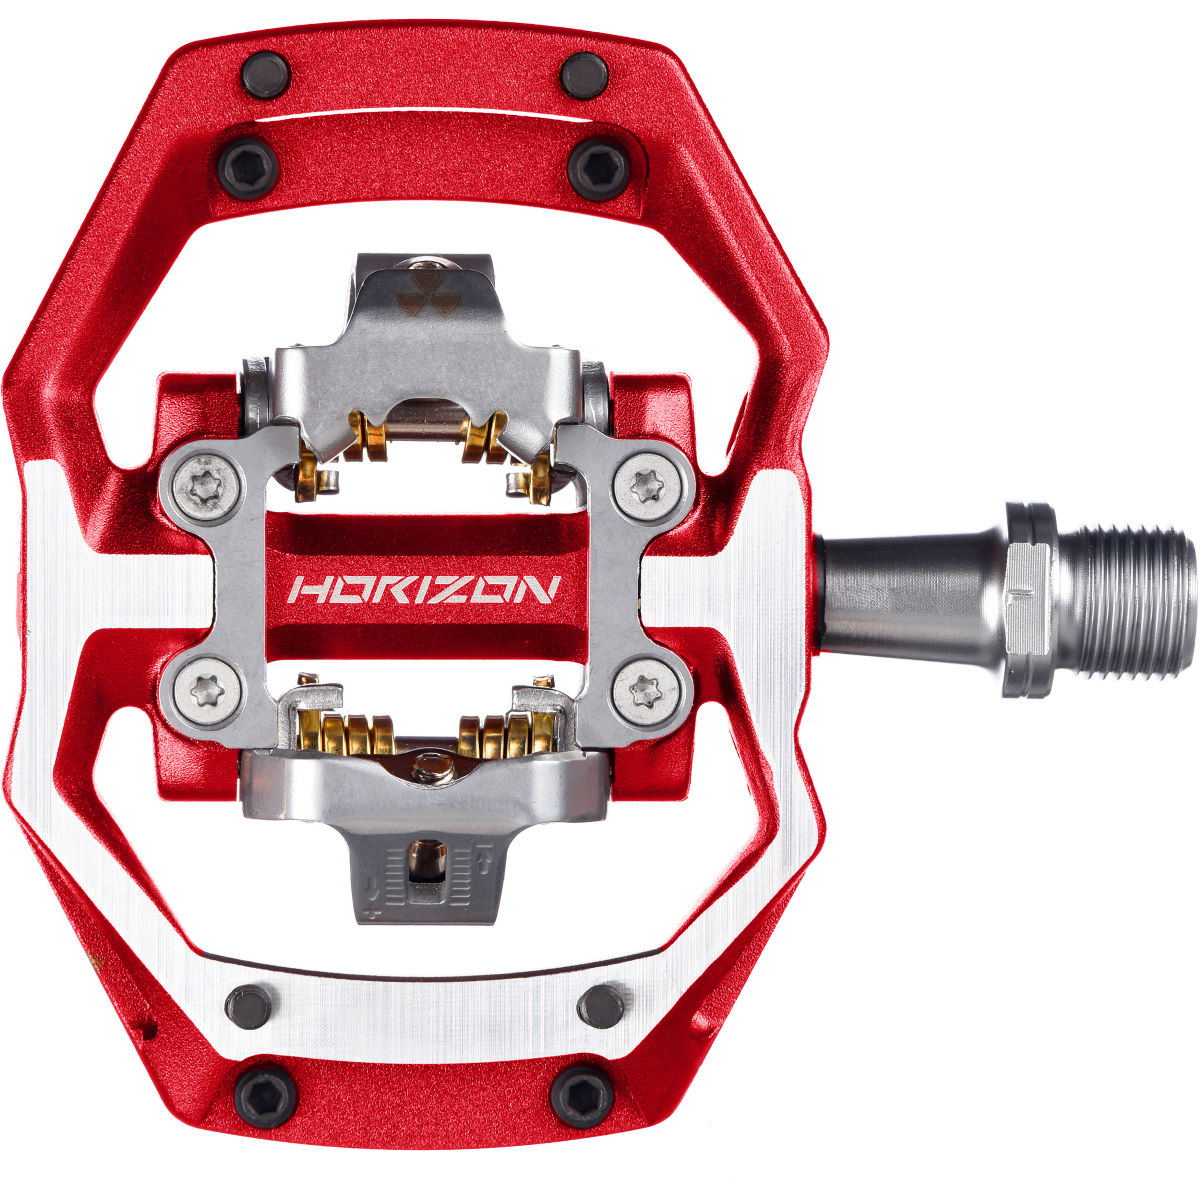 Nukeproof Horizon Cs Crmo Trail Pedals - Red  Clip-in Pedals